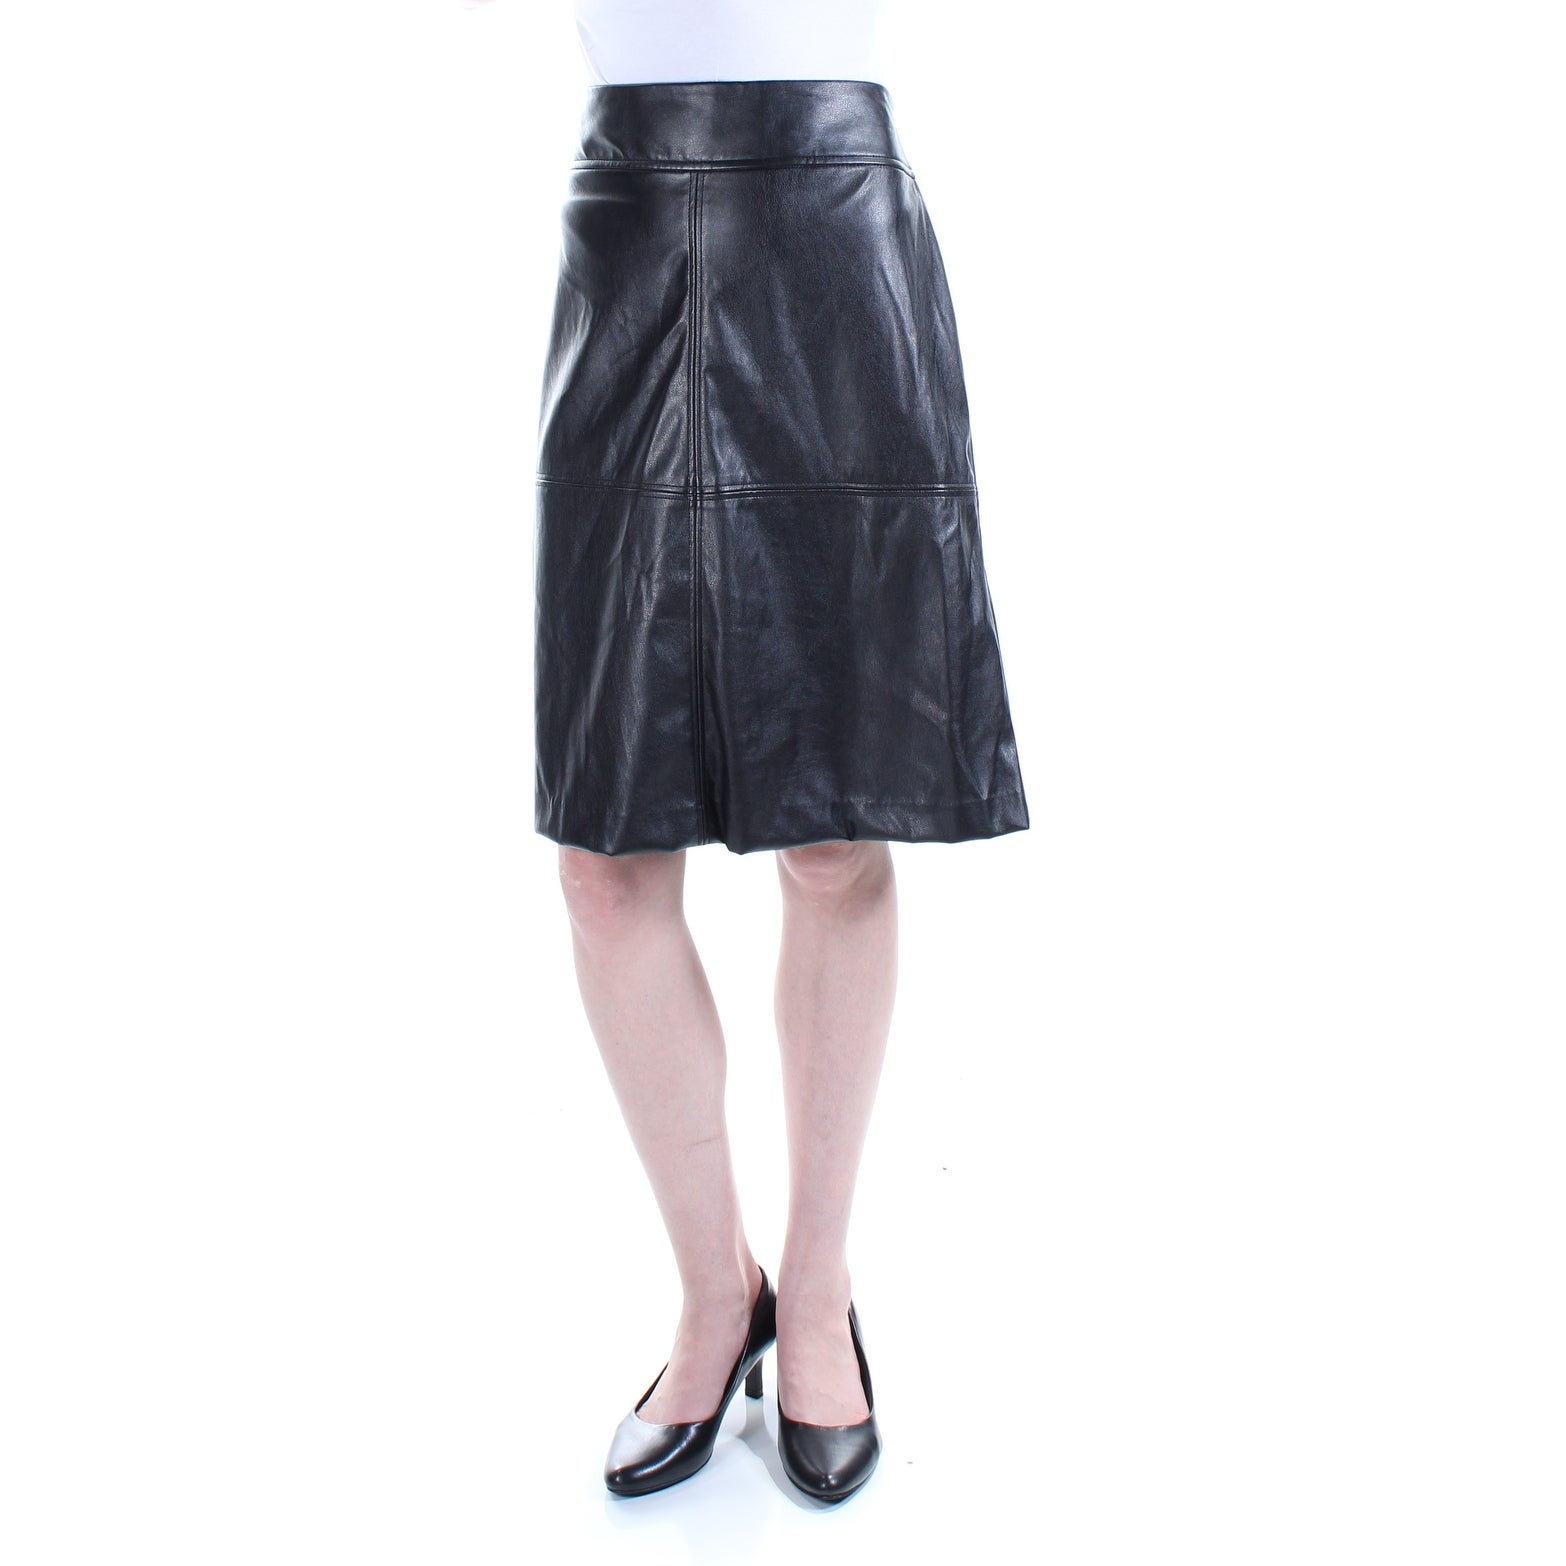 884d6a1785 Alfani Skirts | Find Great Women's Clothing Deals Shopping at Overstock